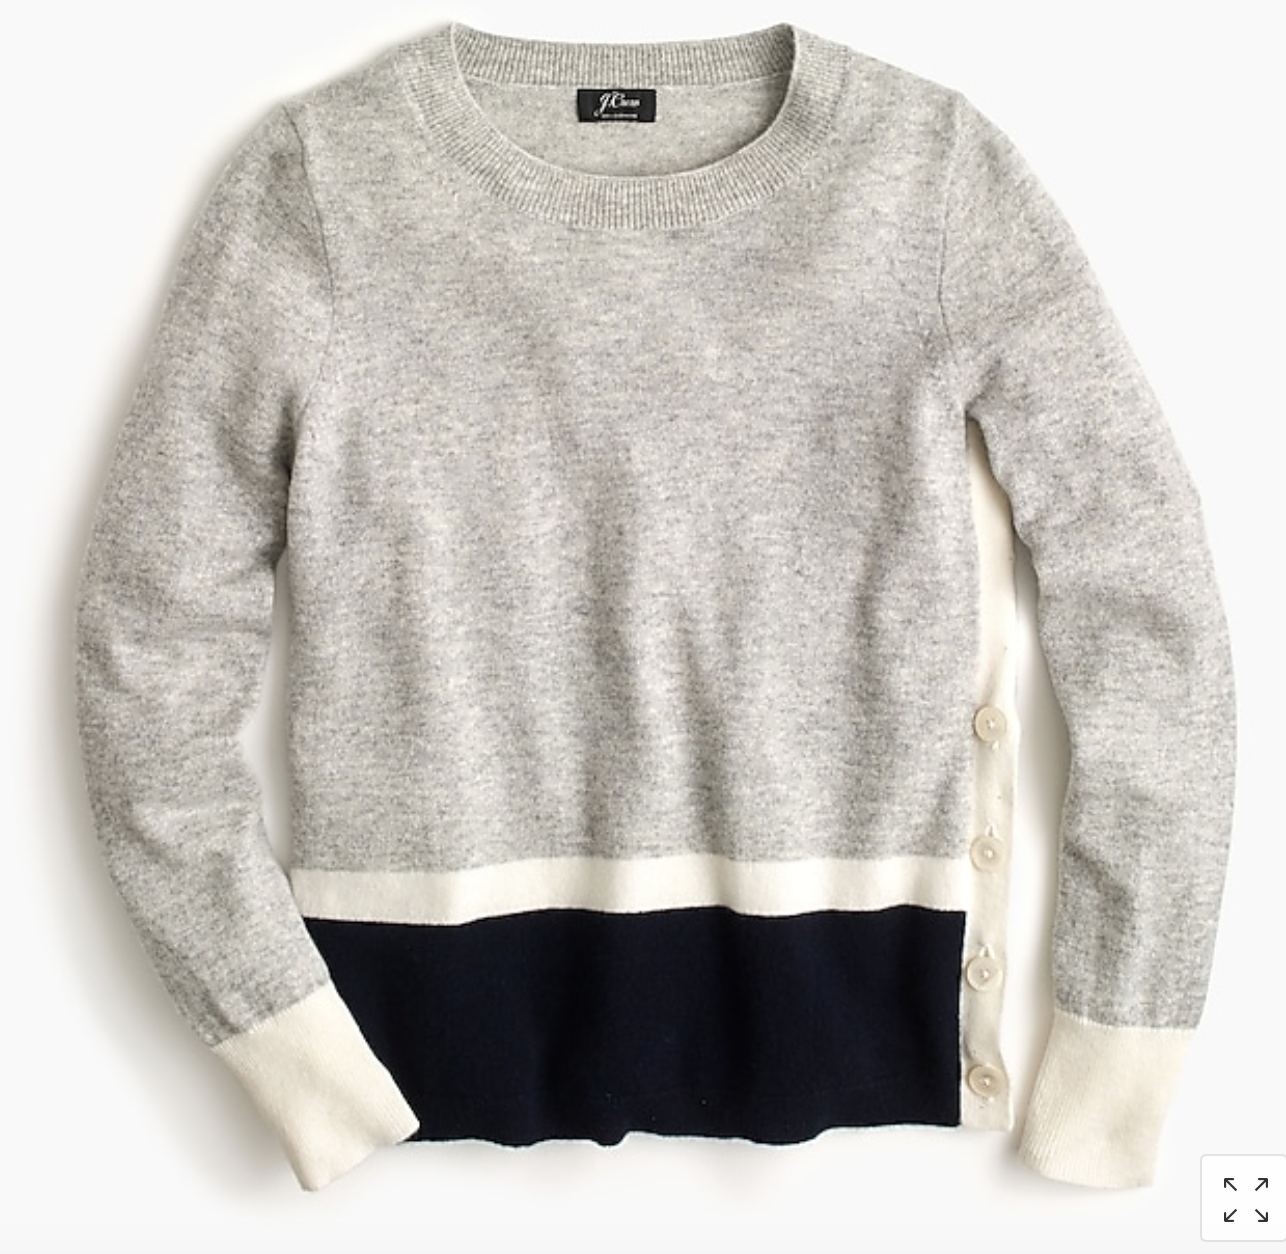 Cashmere Striped Sweater with Buttons